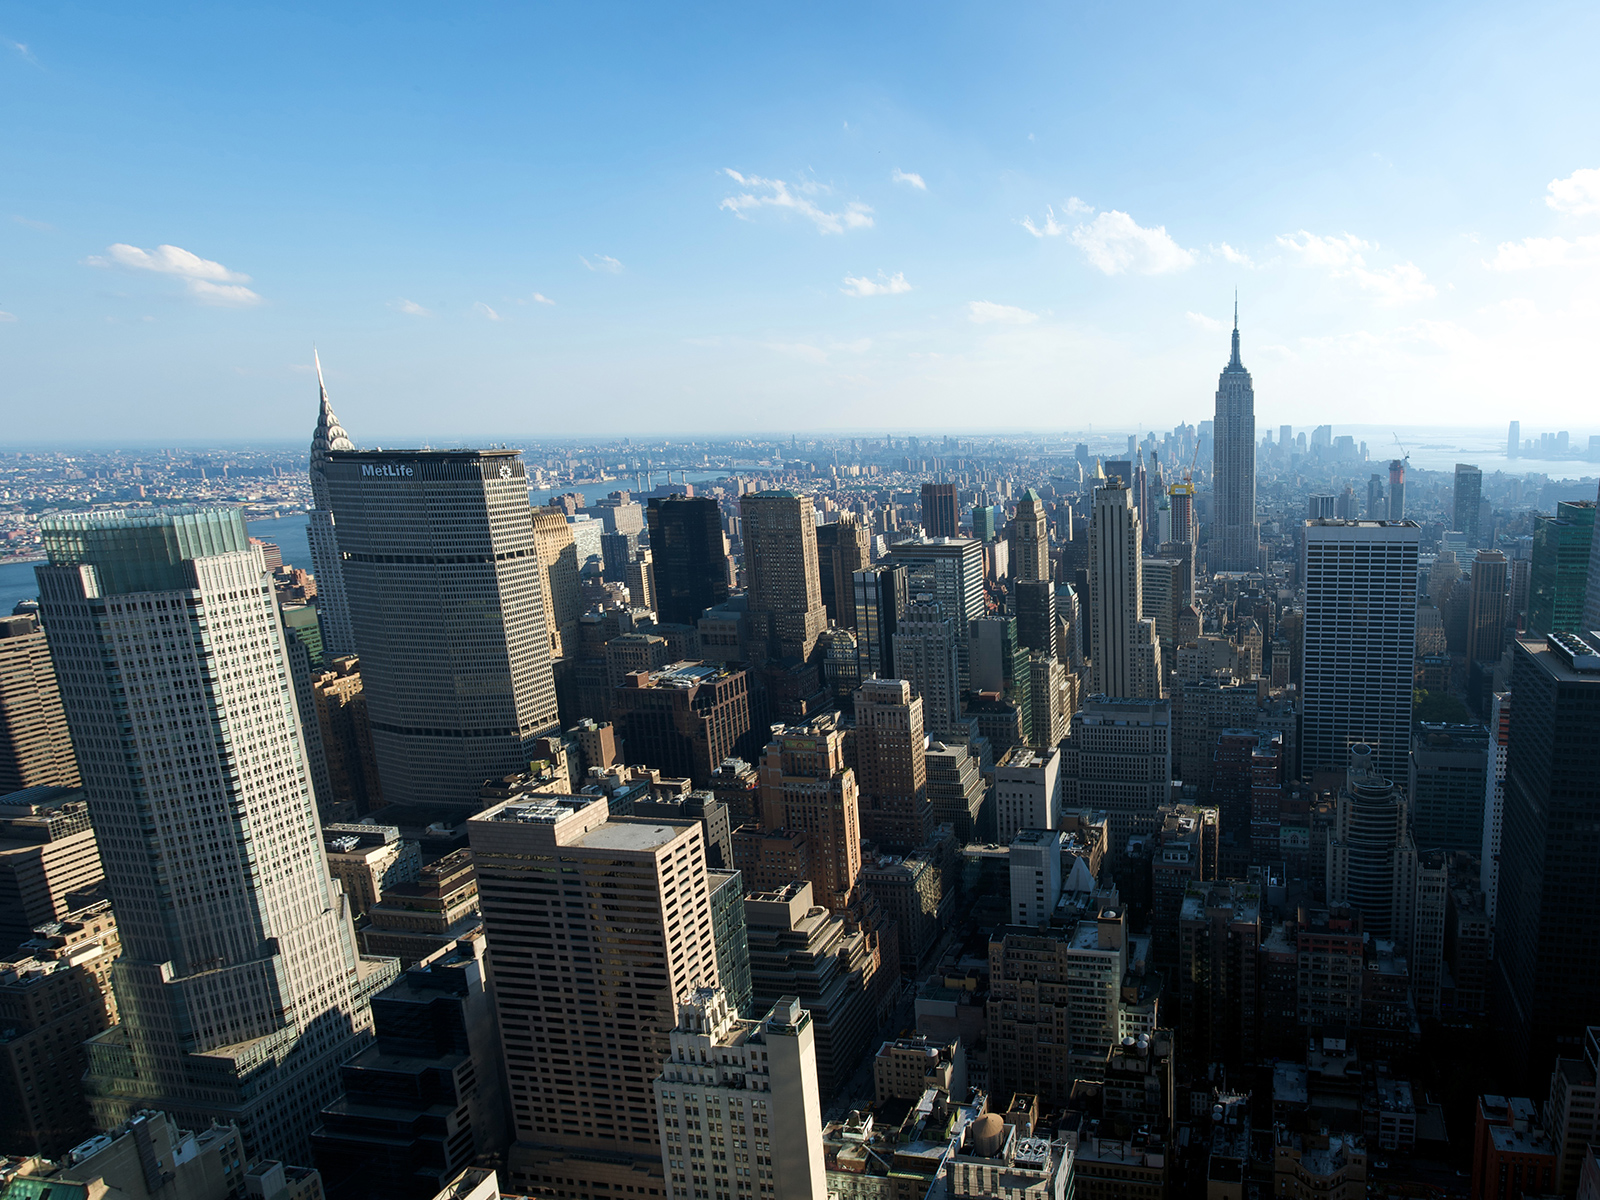 view from the top of the Rockefeller centre observation deck in New York, USA